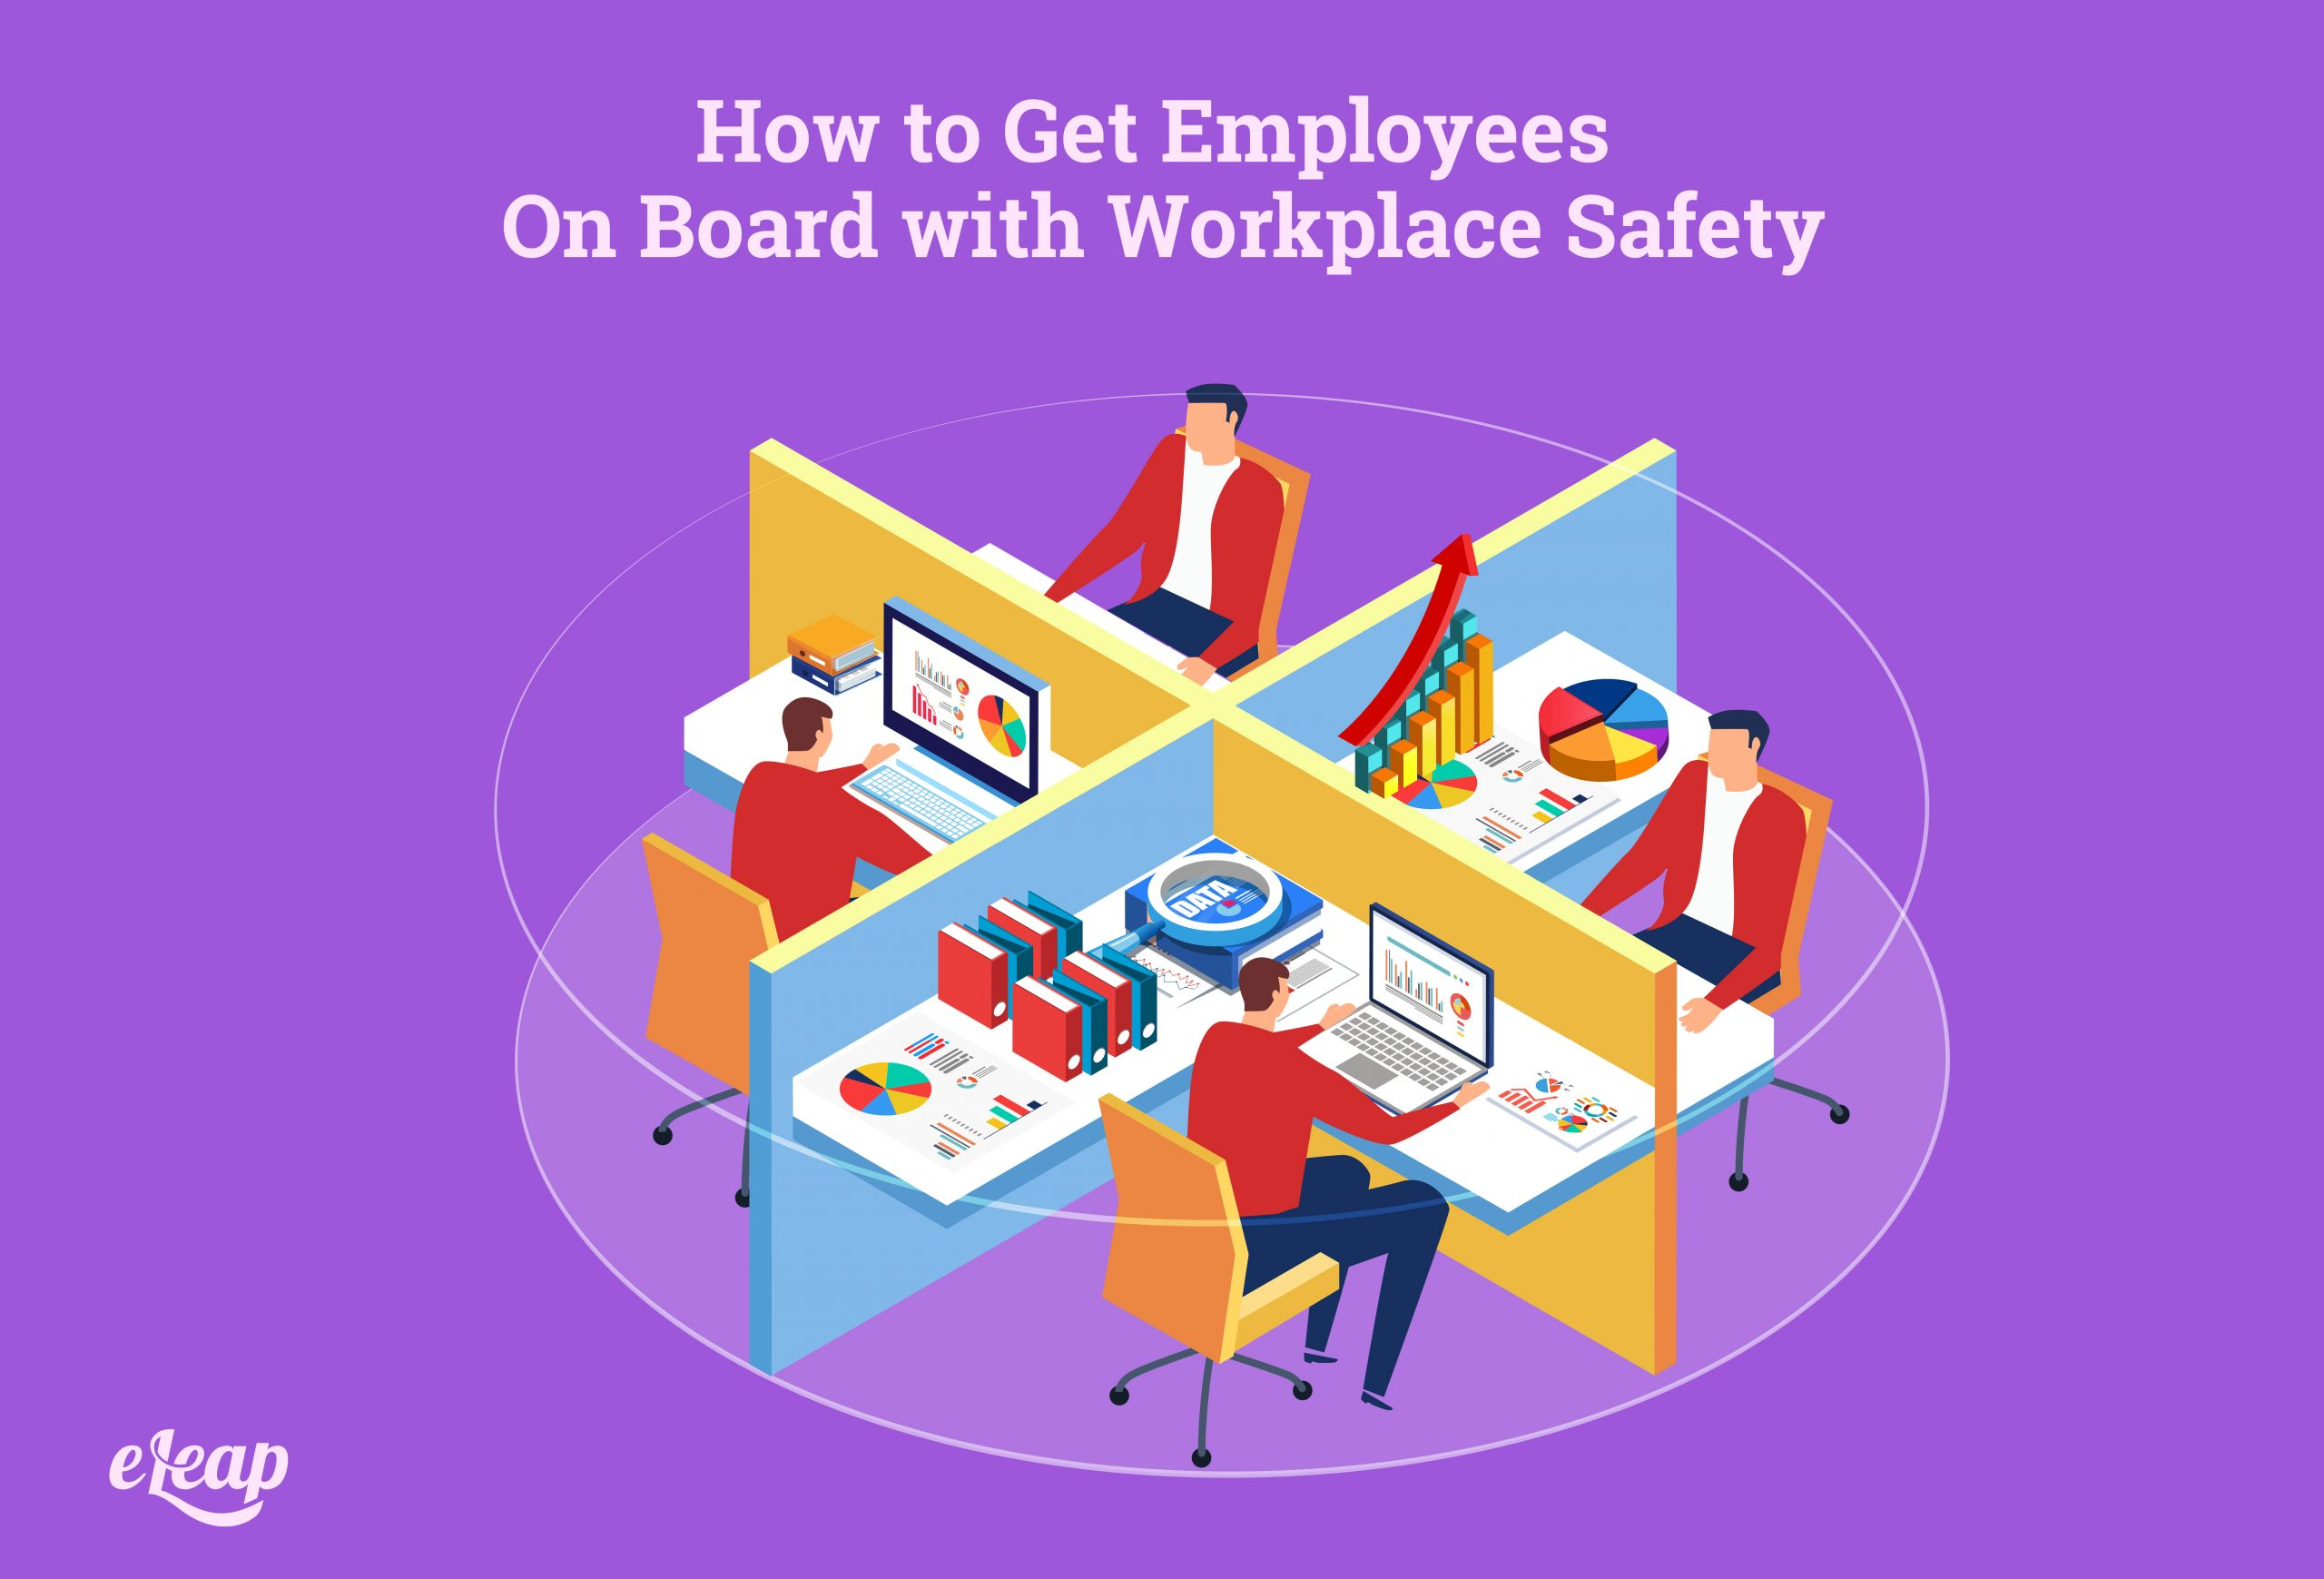 How to Get Employees On Board with Workplace Safety